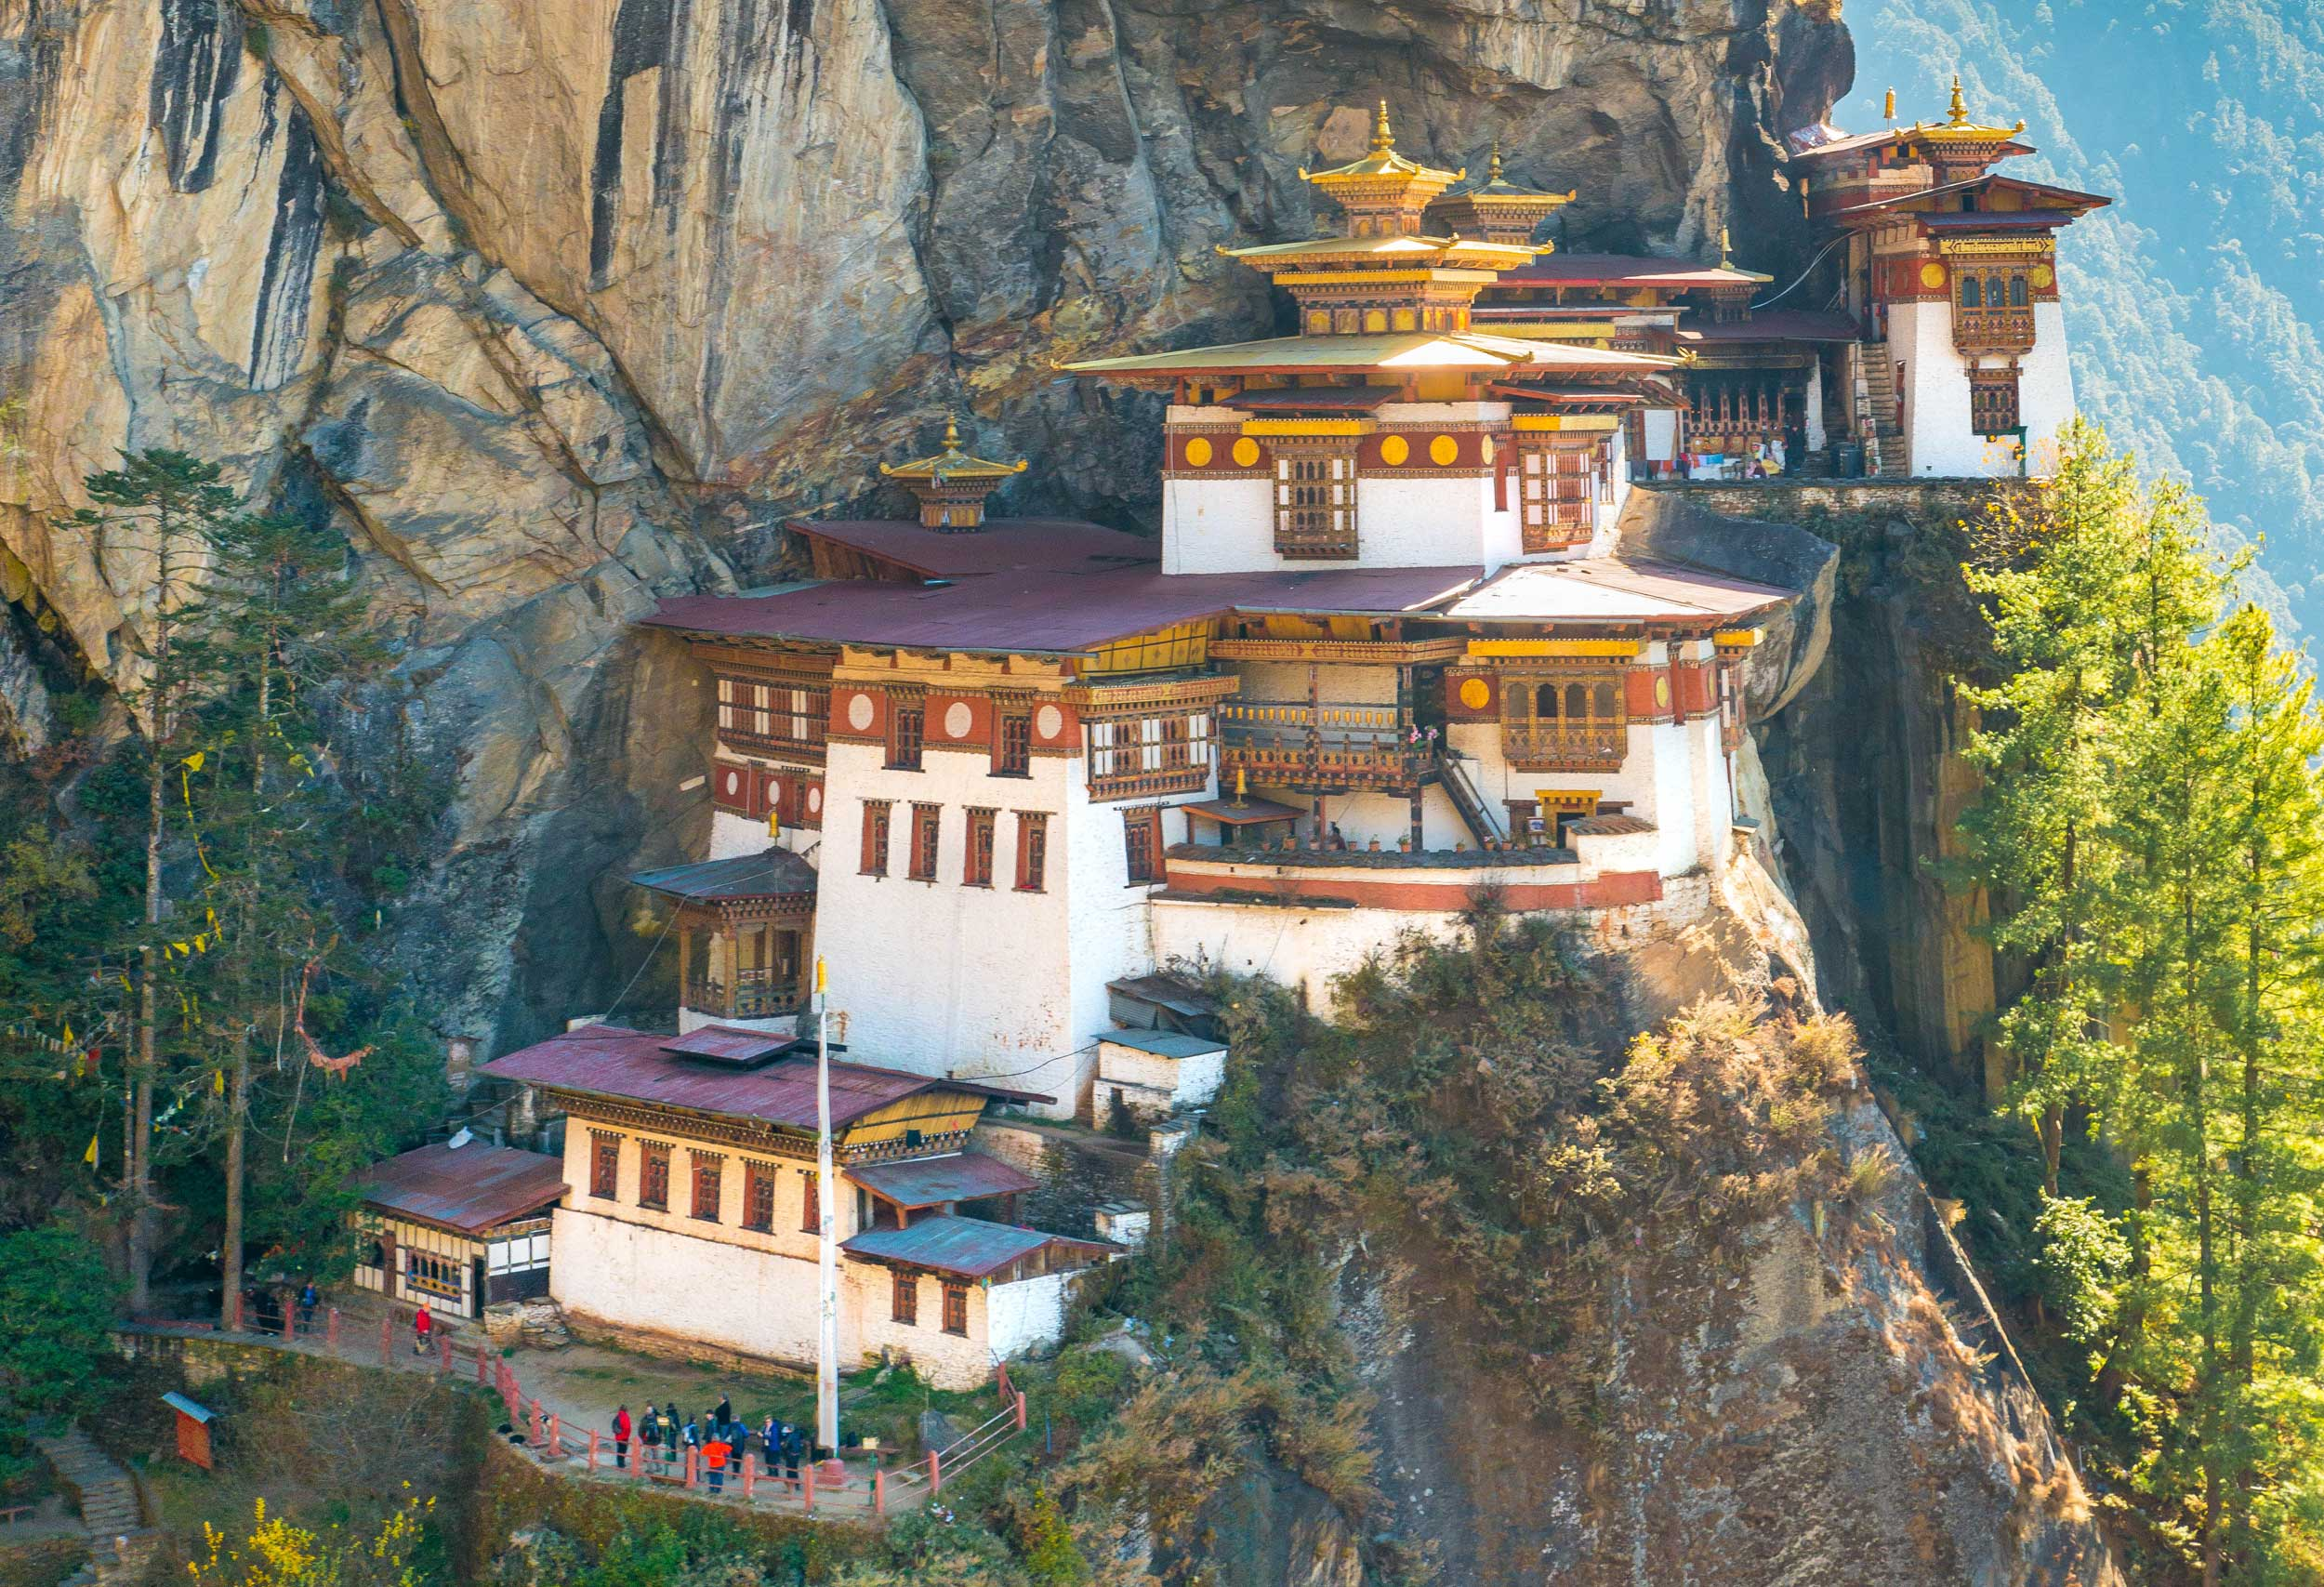 White and red monastery carved into a steep mountain with a sheer drop on one side